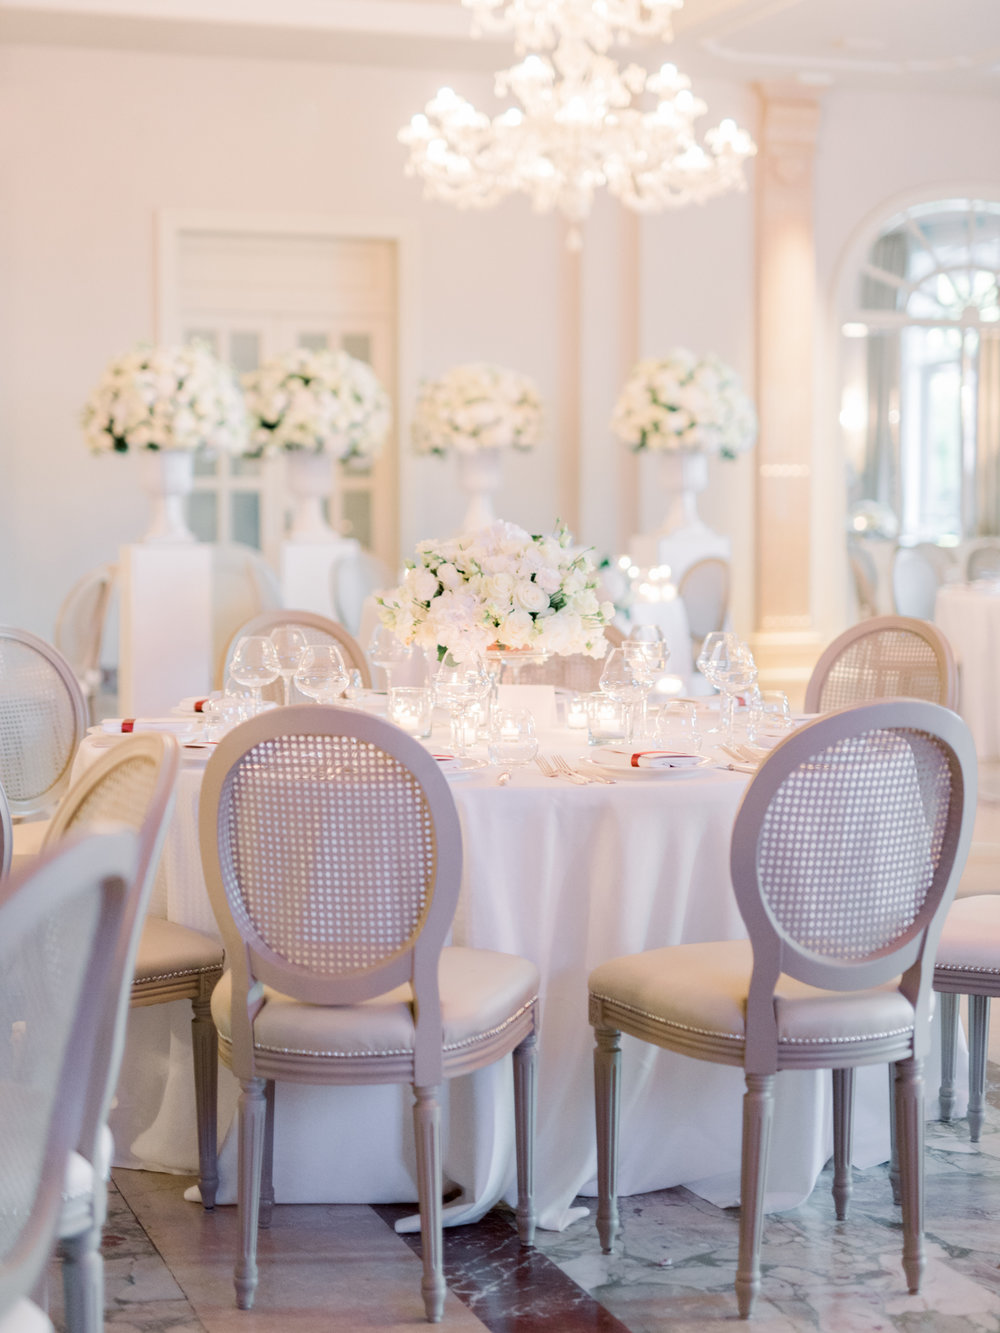 Palace_Villa_Cortine_Hotel_Italian_Wedding_Photographer_Sirmione_AKP-41.jpg